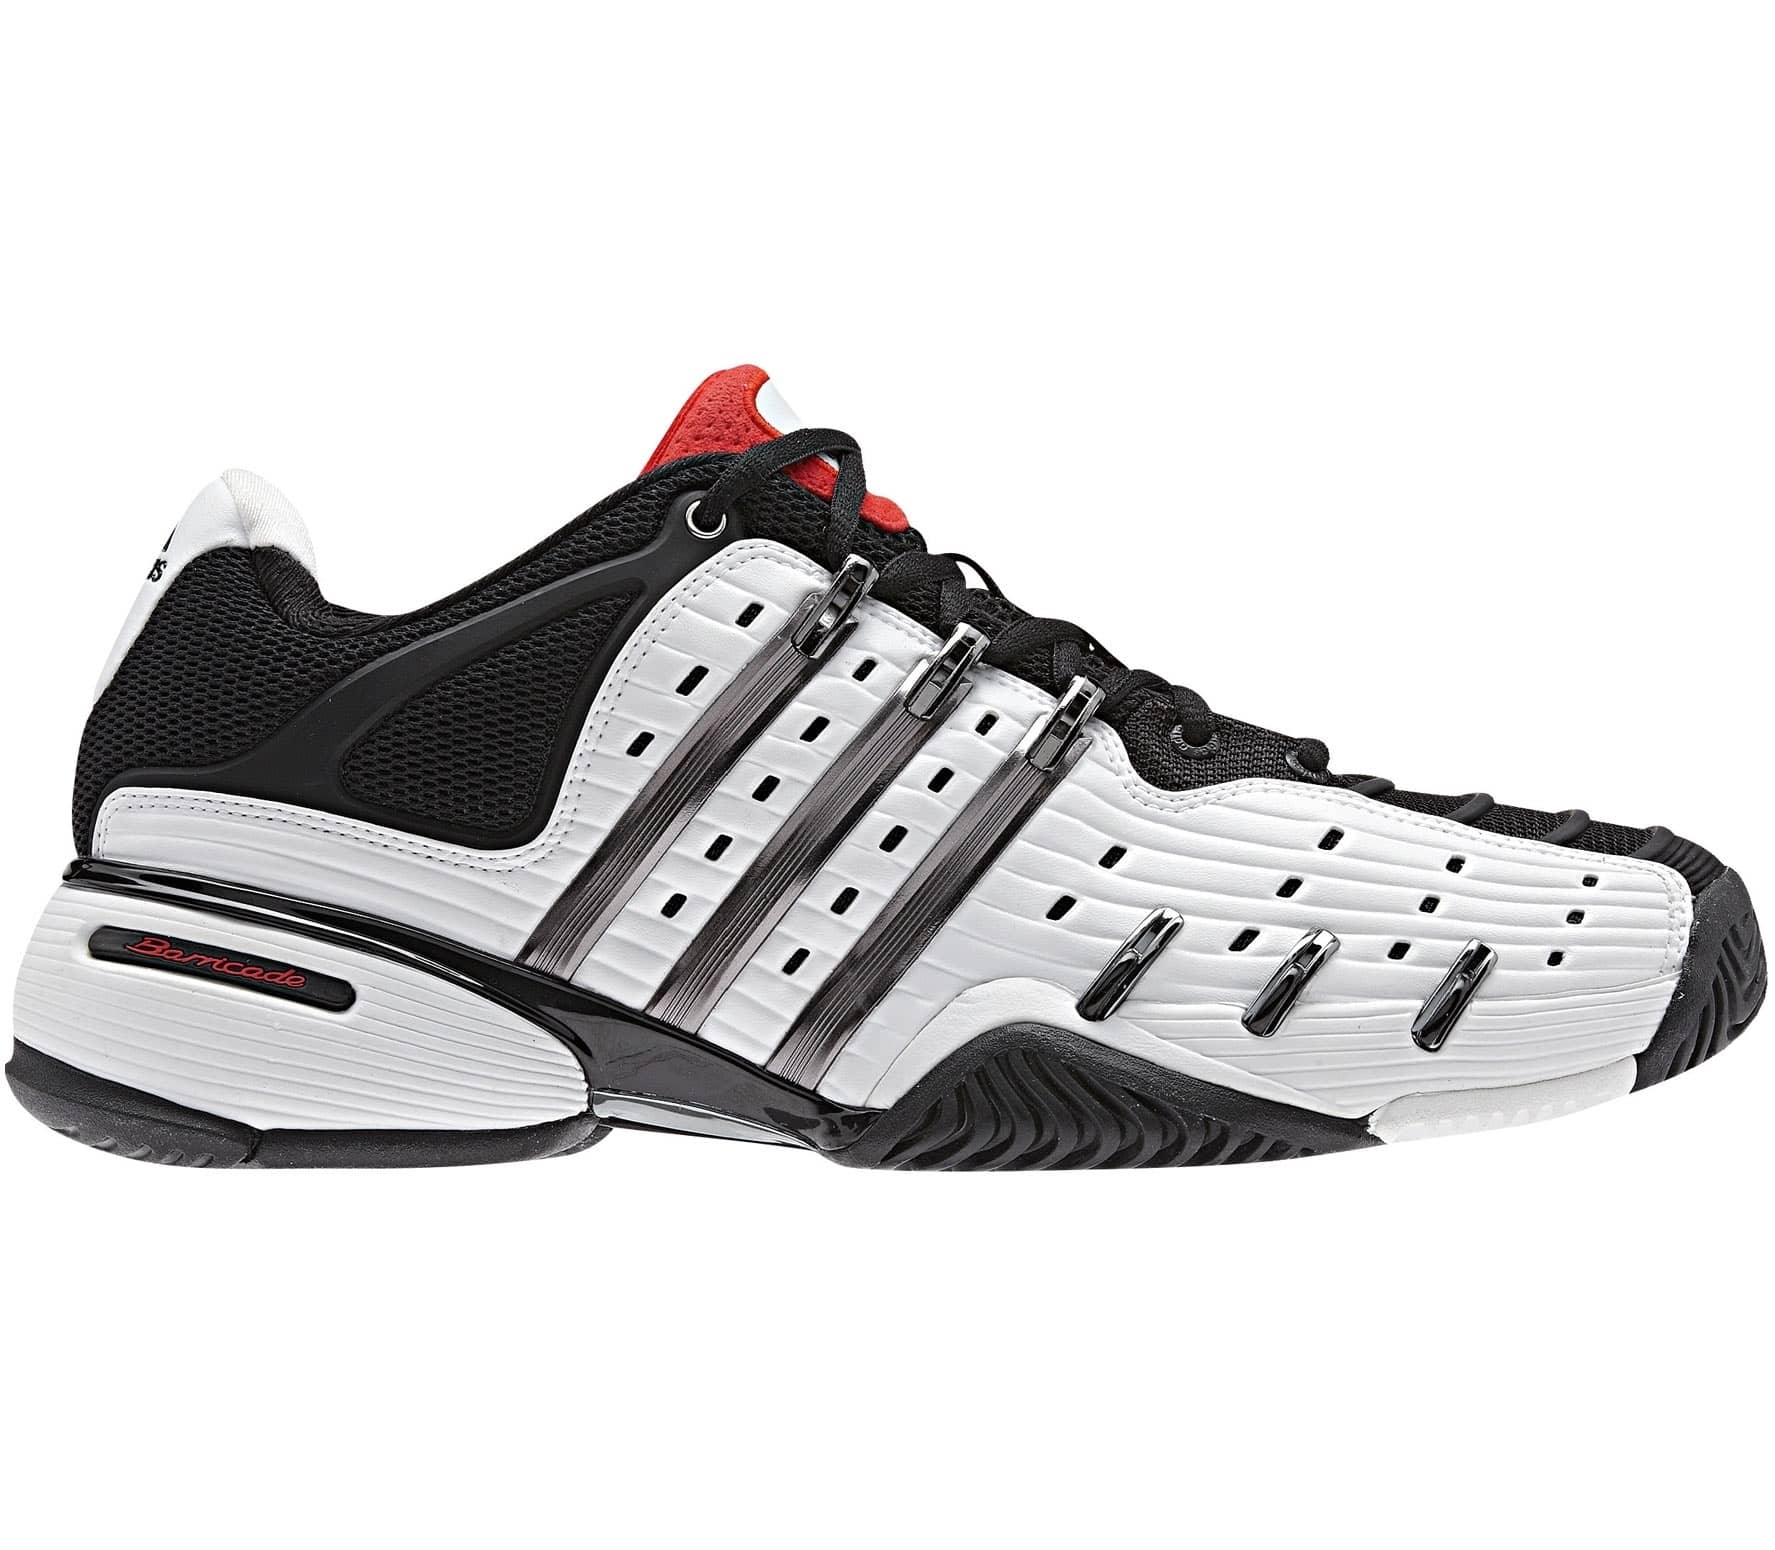 brand new 1f239 9ab3d Adidas - Barricade V Classic Synthetic mens tennis shoes (Wei